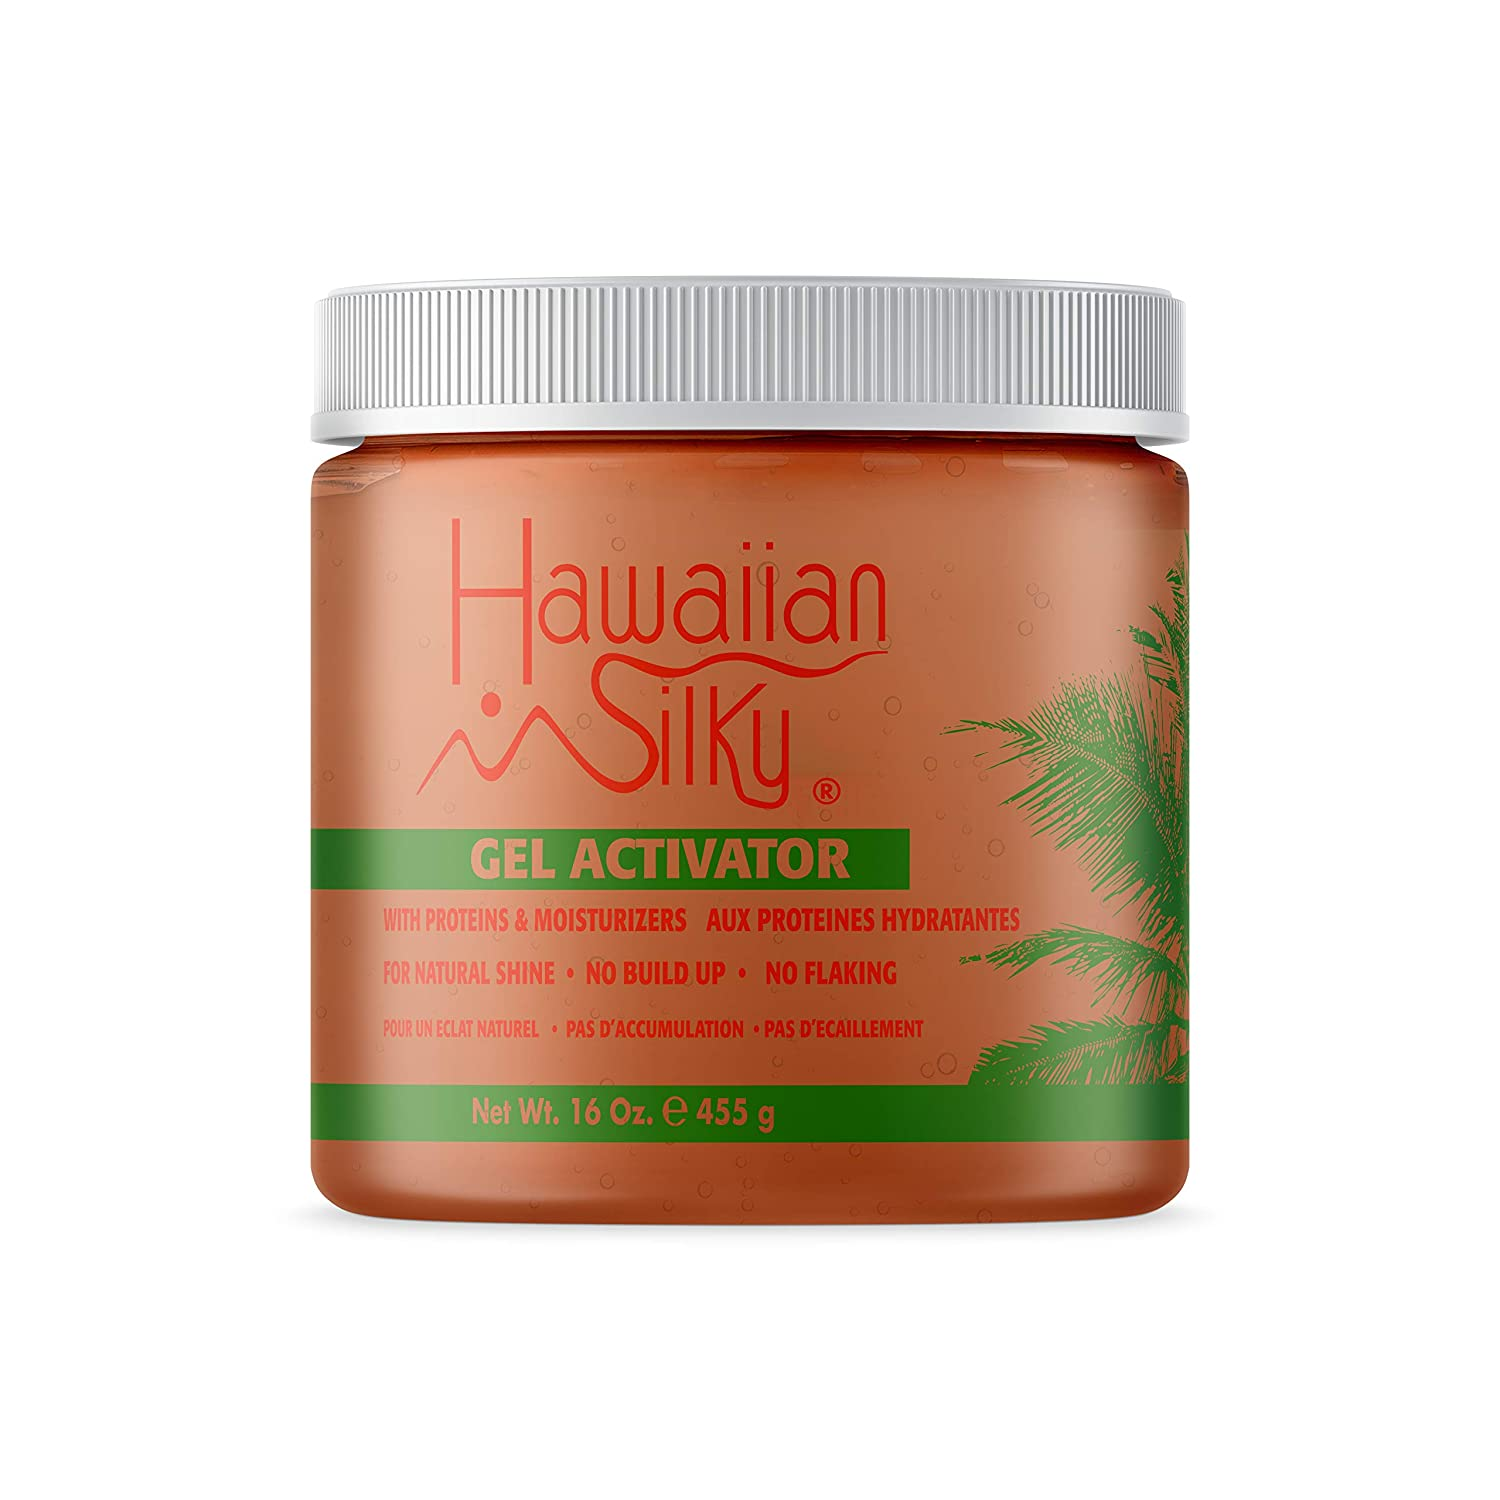 Hawaiian Silky Texturizing Gel Activator, 16 fl oz - Natural Protein Extracts to Style & Moisturize Dry and Damaged Hair - for Color Treated Hair - Good on Men, Women & Kids